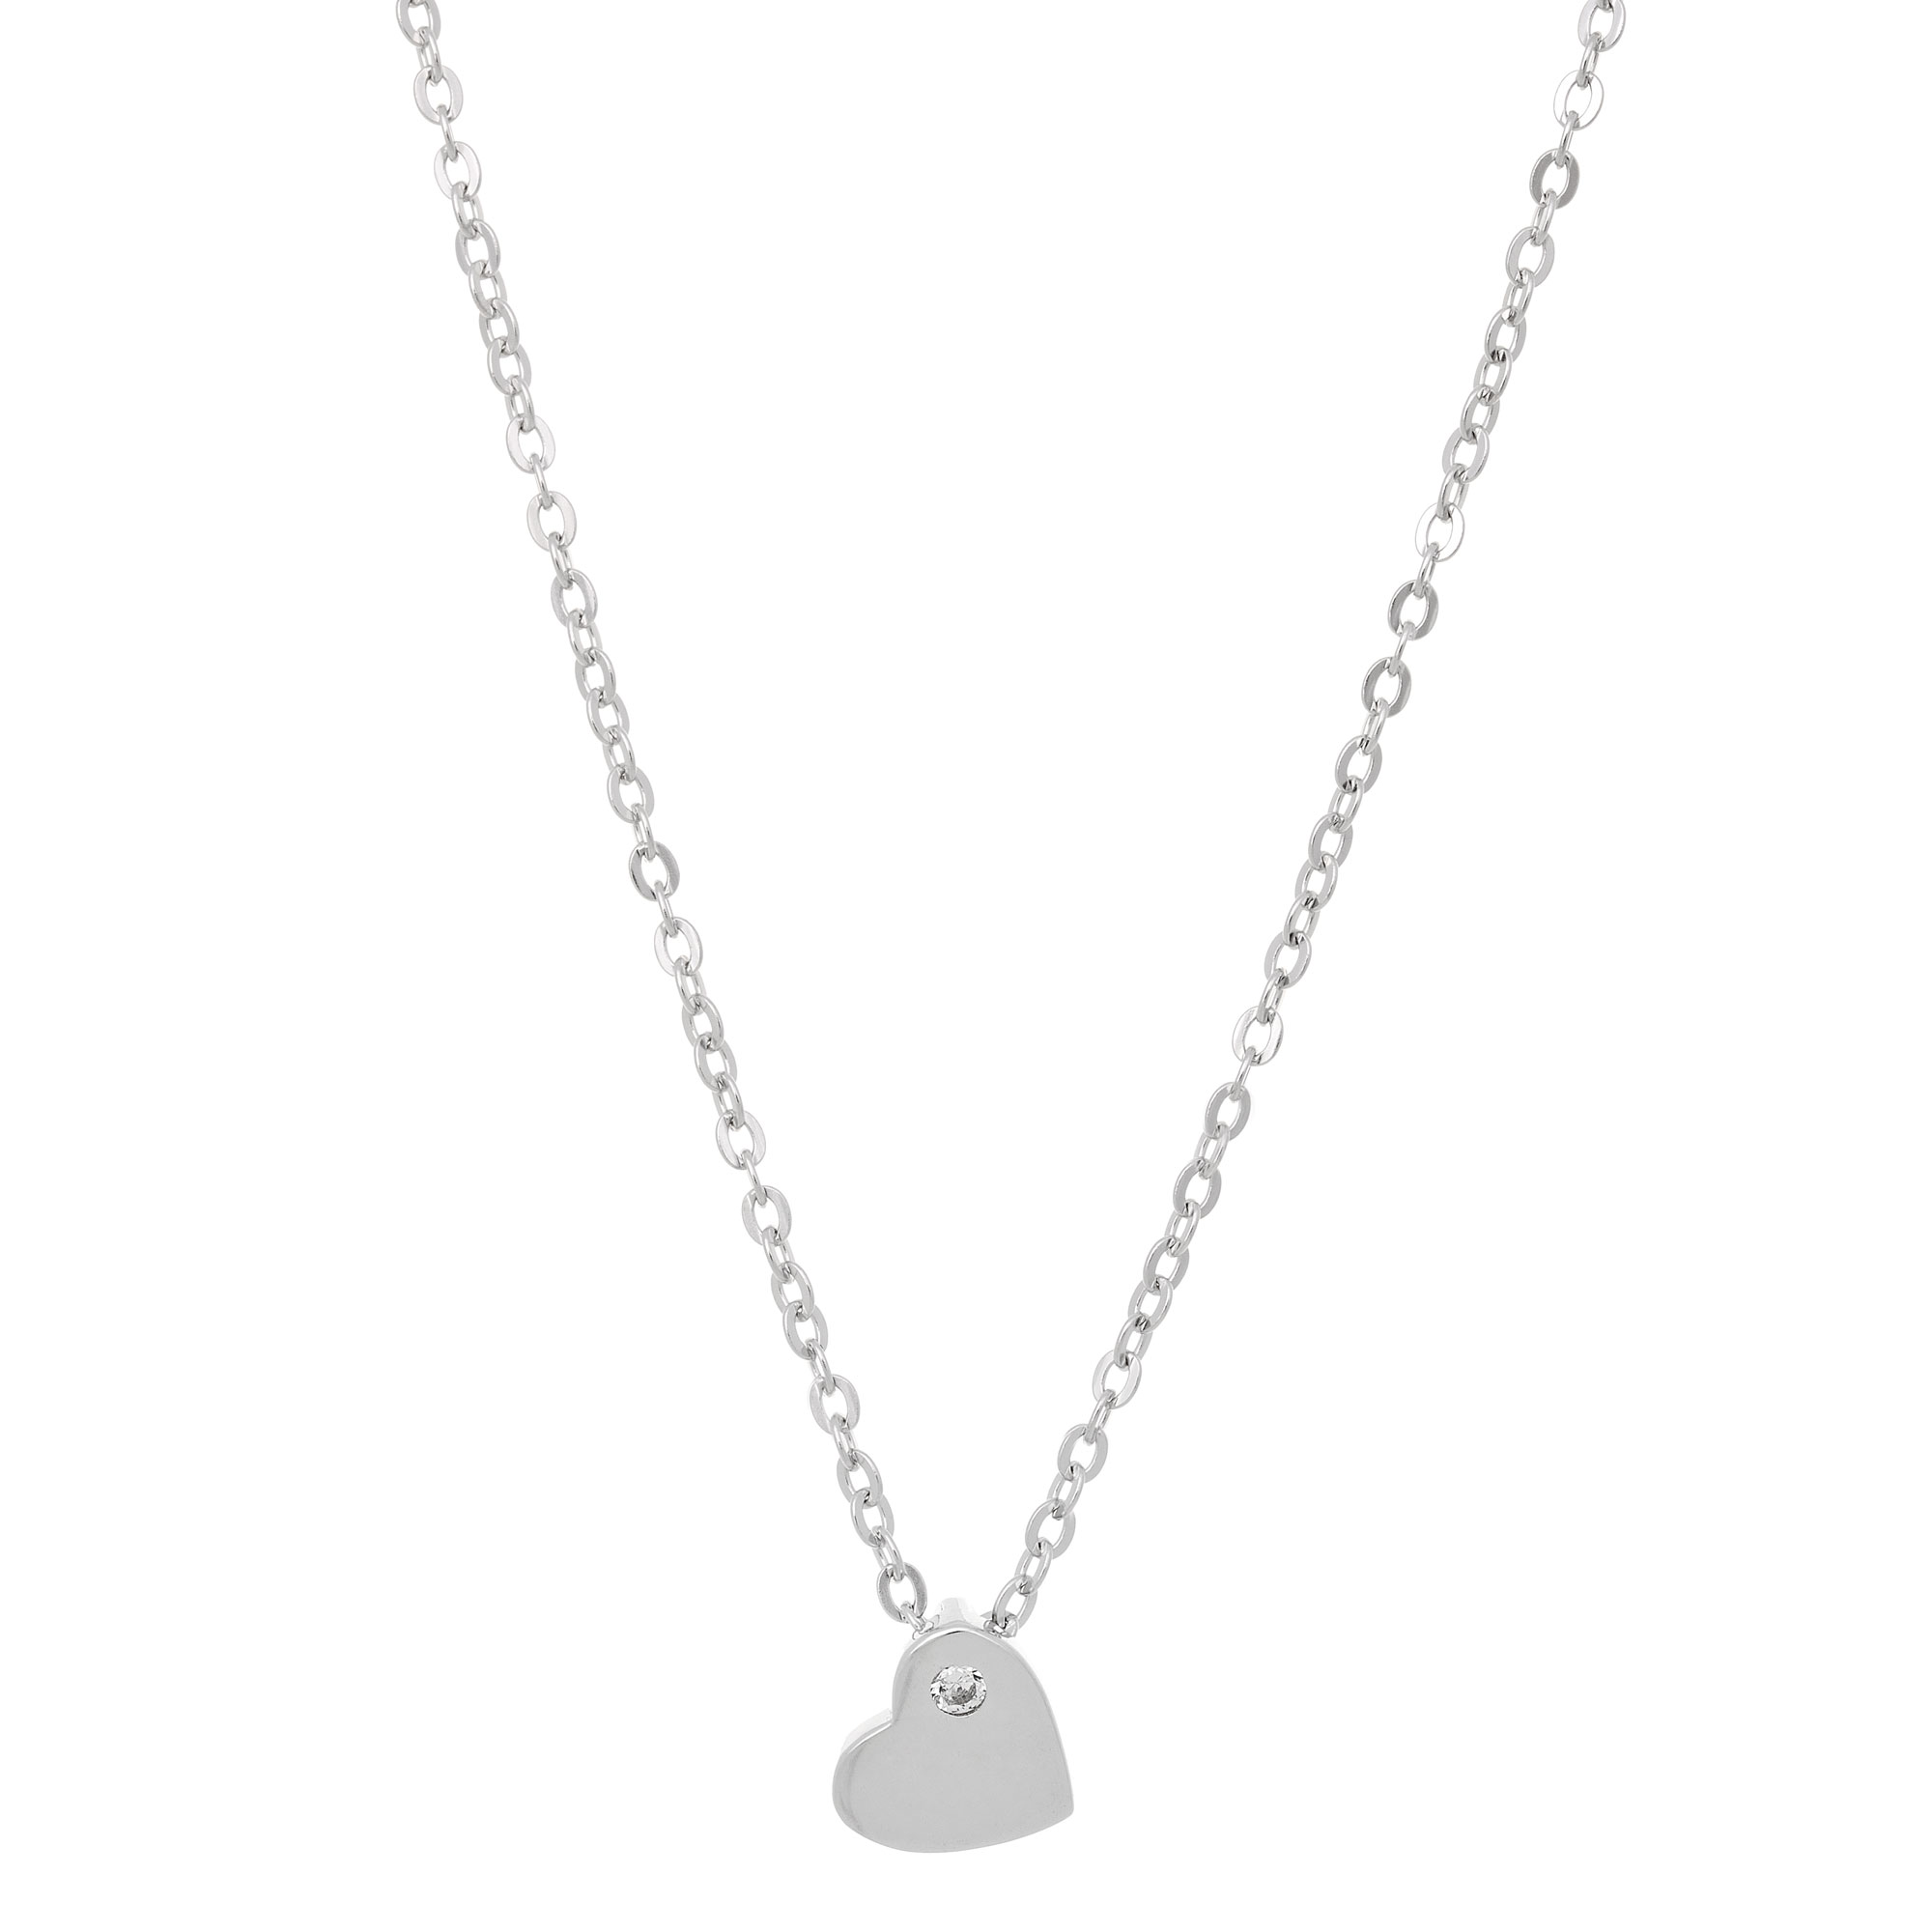 Prince silvero sterling silver necklace heart with platinum prince silvero sterling silver necklace heart with platinum plating and precious stones zirconia aloadofball Image collections